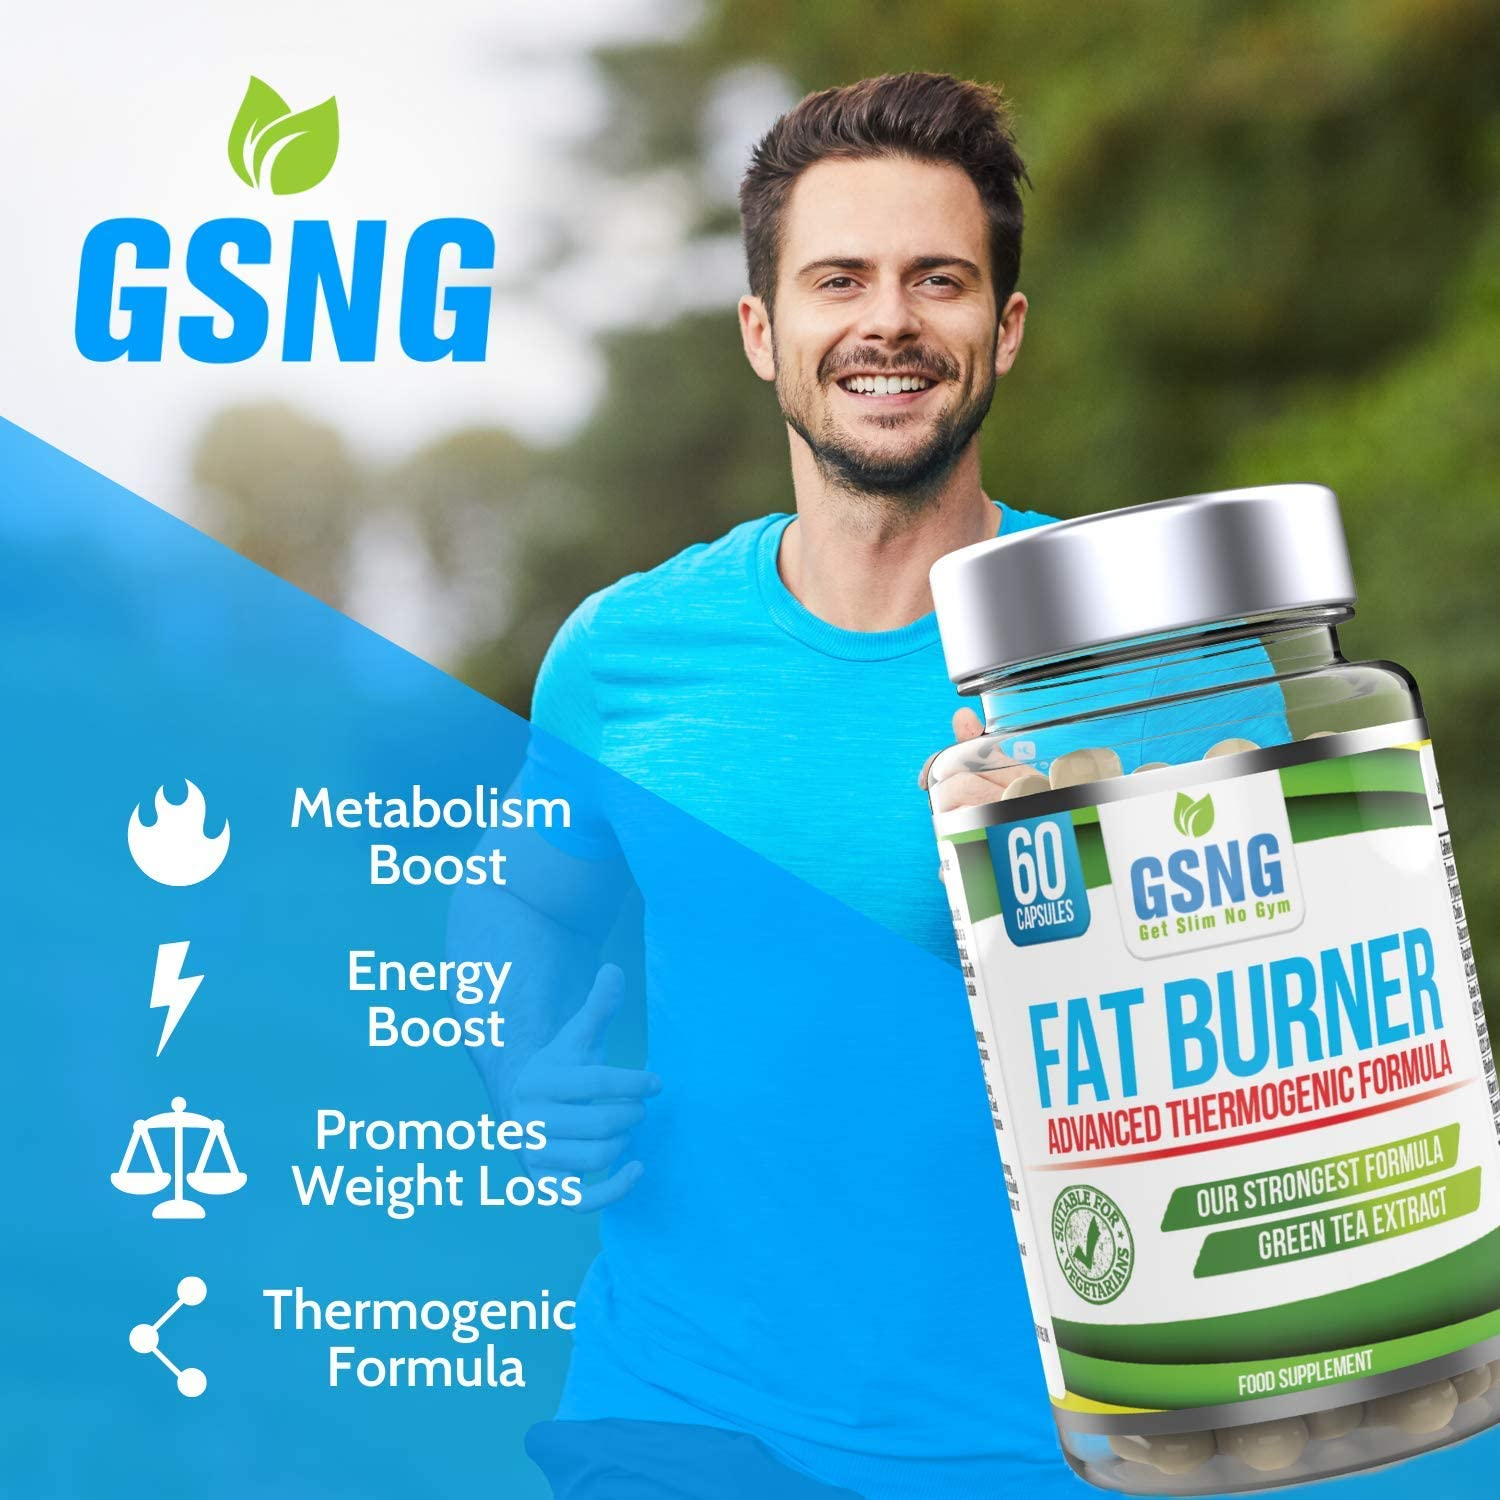 Fat Burner Weight Loss Pills aE Metabolism Support Appetite Suppressant - Green Tea Extract Lean Slimming Diet Supplement for Men Women - Premium UK Manufacture aE 60 Vegetarian Capsules - GSNG